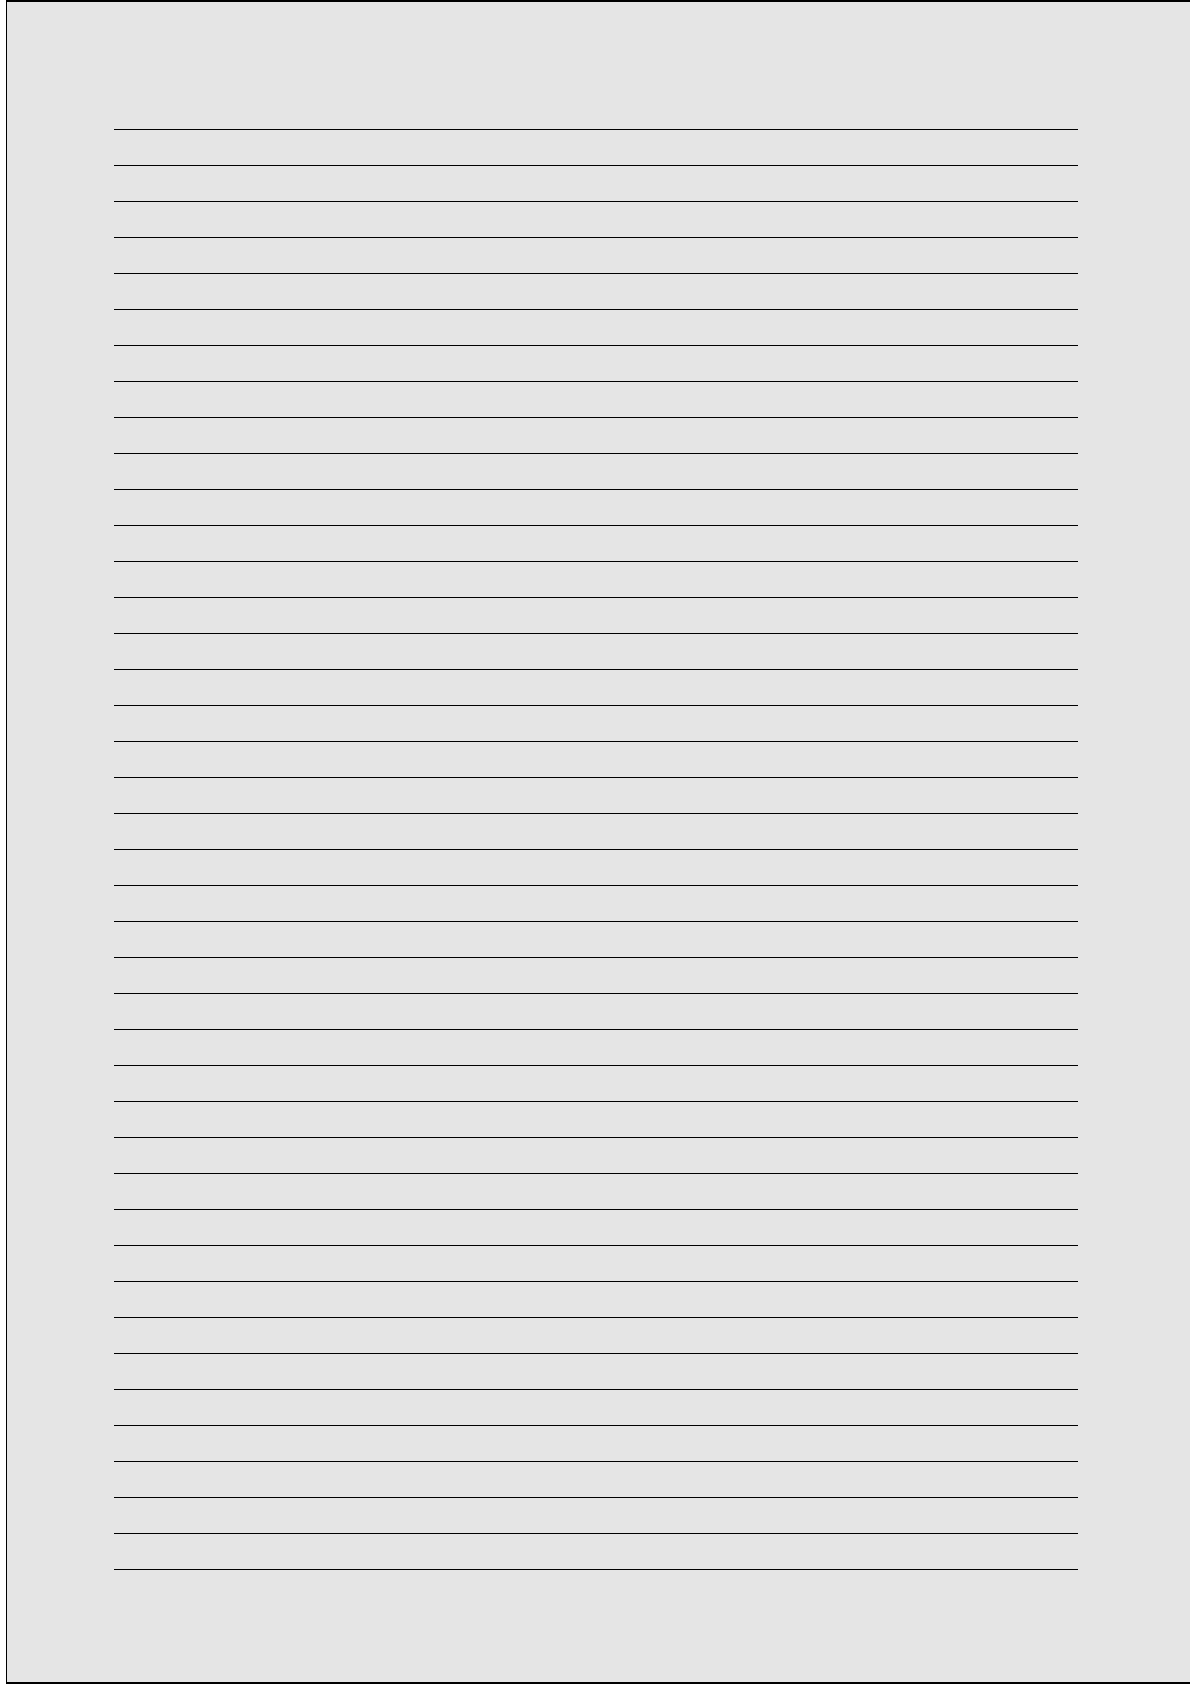 A4 Size Lined Paper with Narrow Black Lines - Light Gray ...